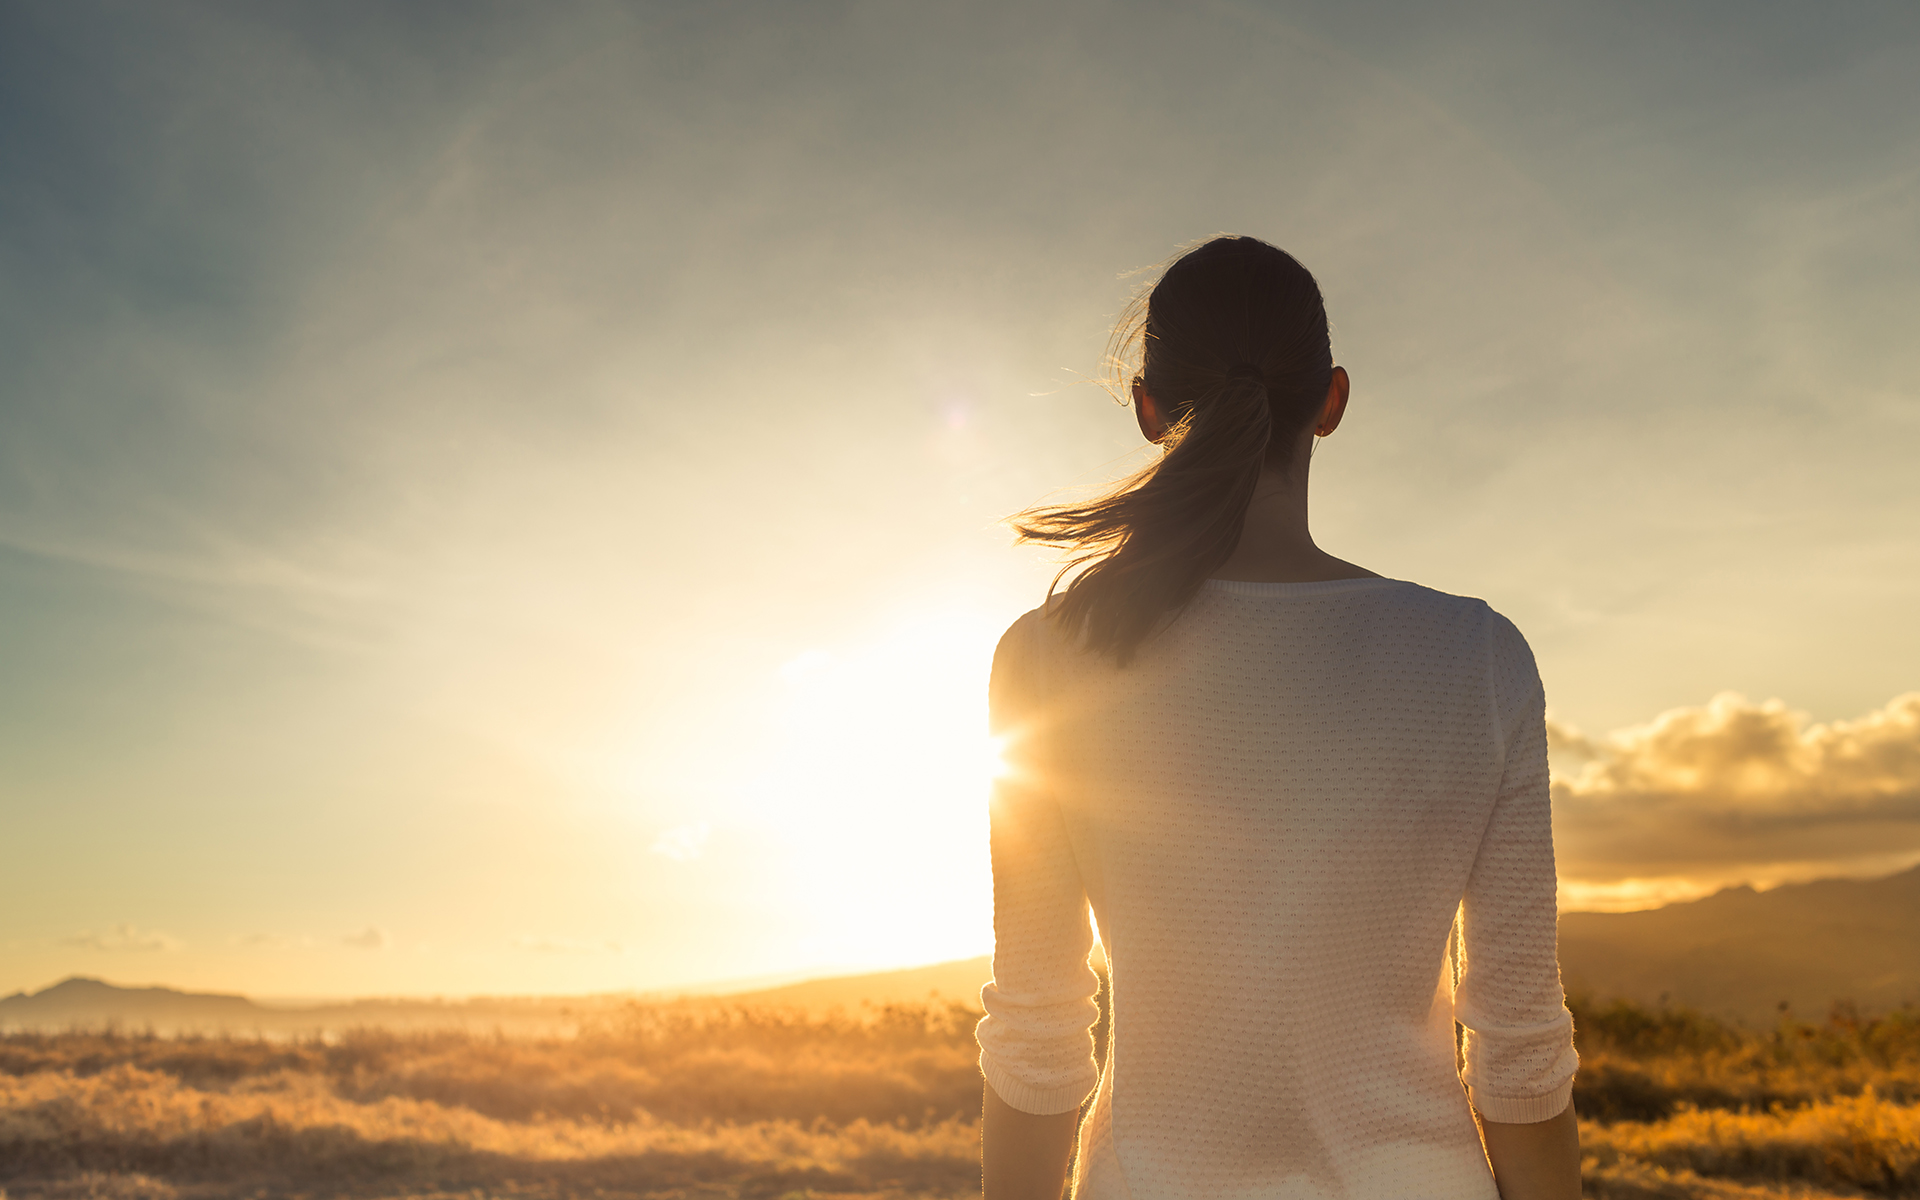 How to avoid feeling overwhelmed in stressful times - Woman admiring a sunset